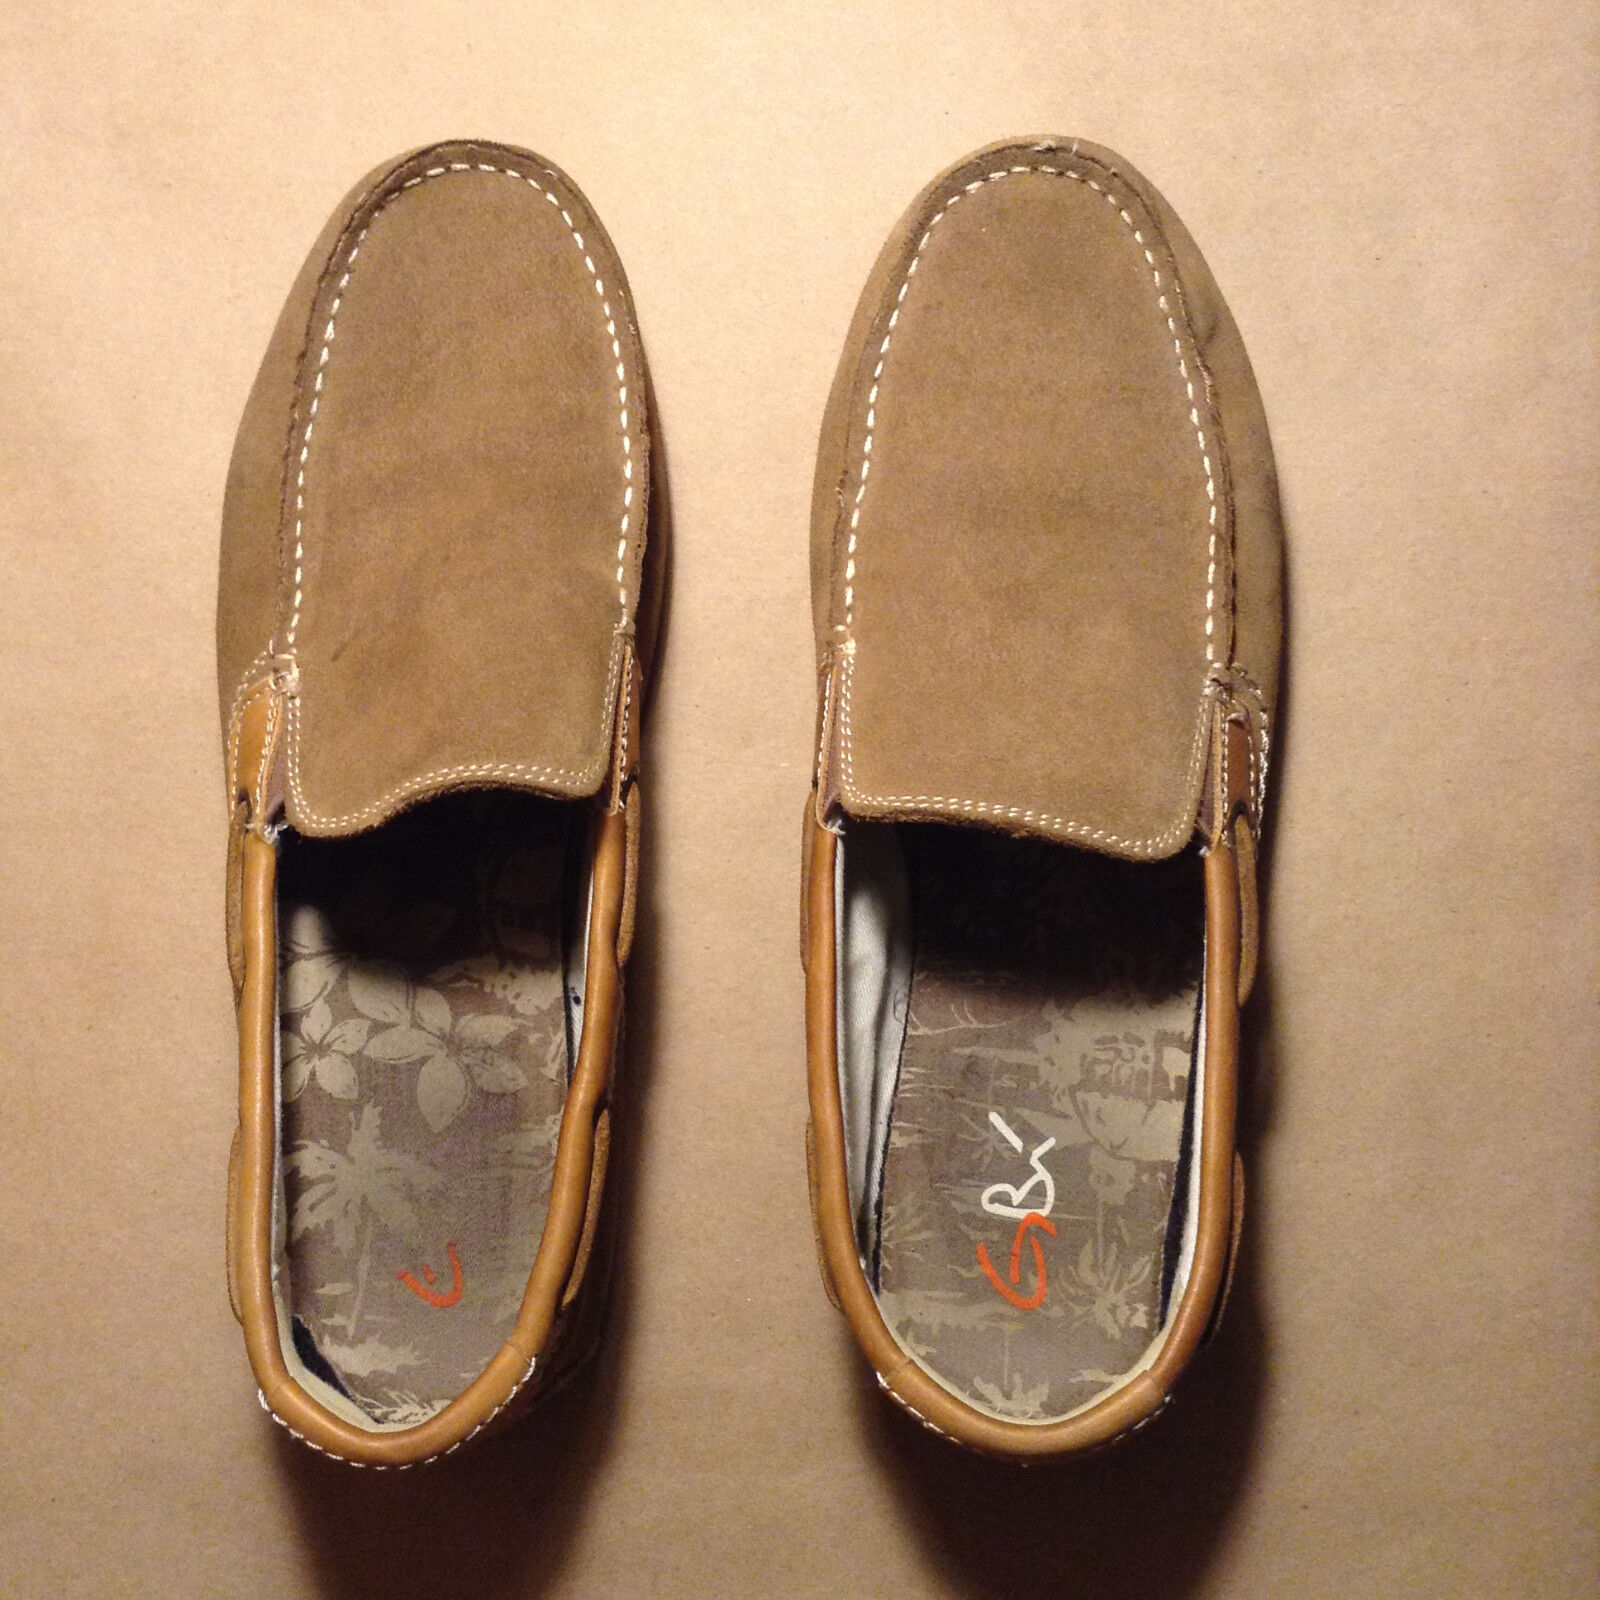 GBX Mens 135116 Suede Casual Slip On Loafers shoes Brown Beige Sizes 11M